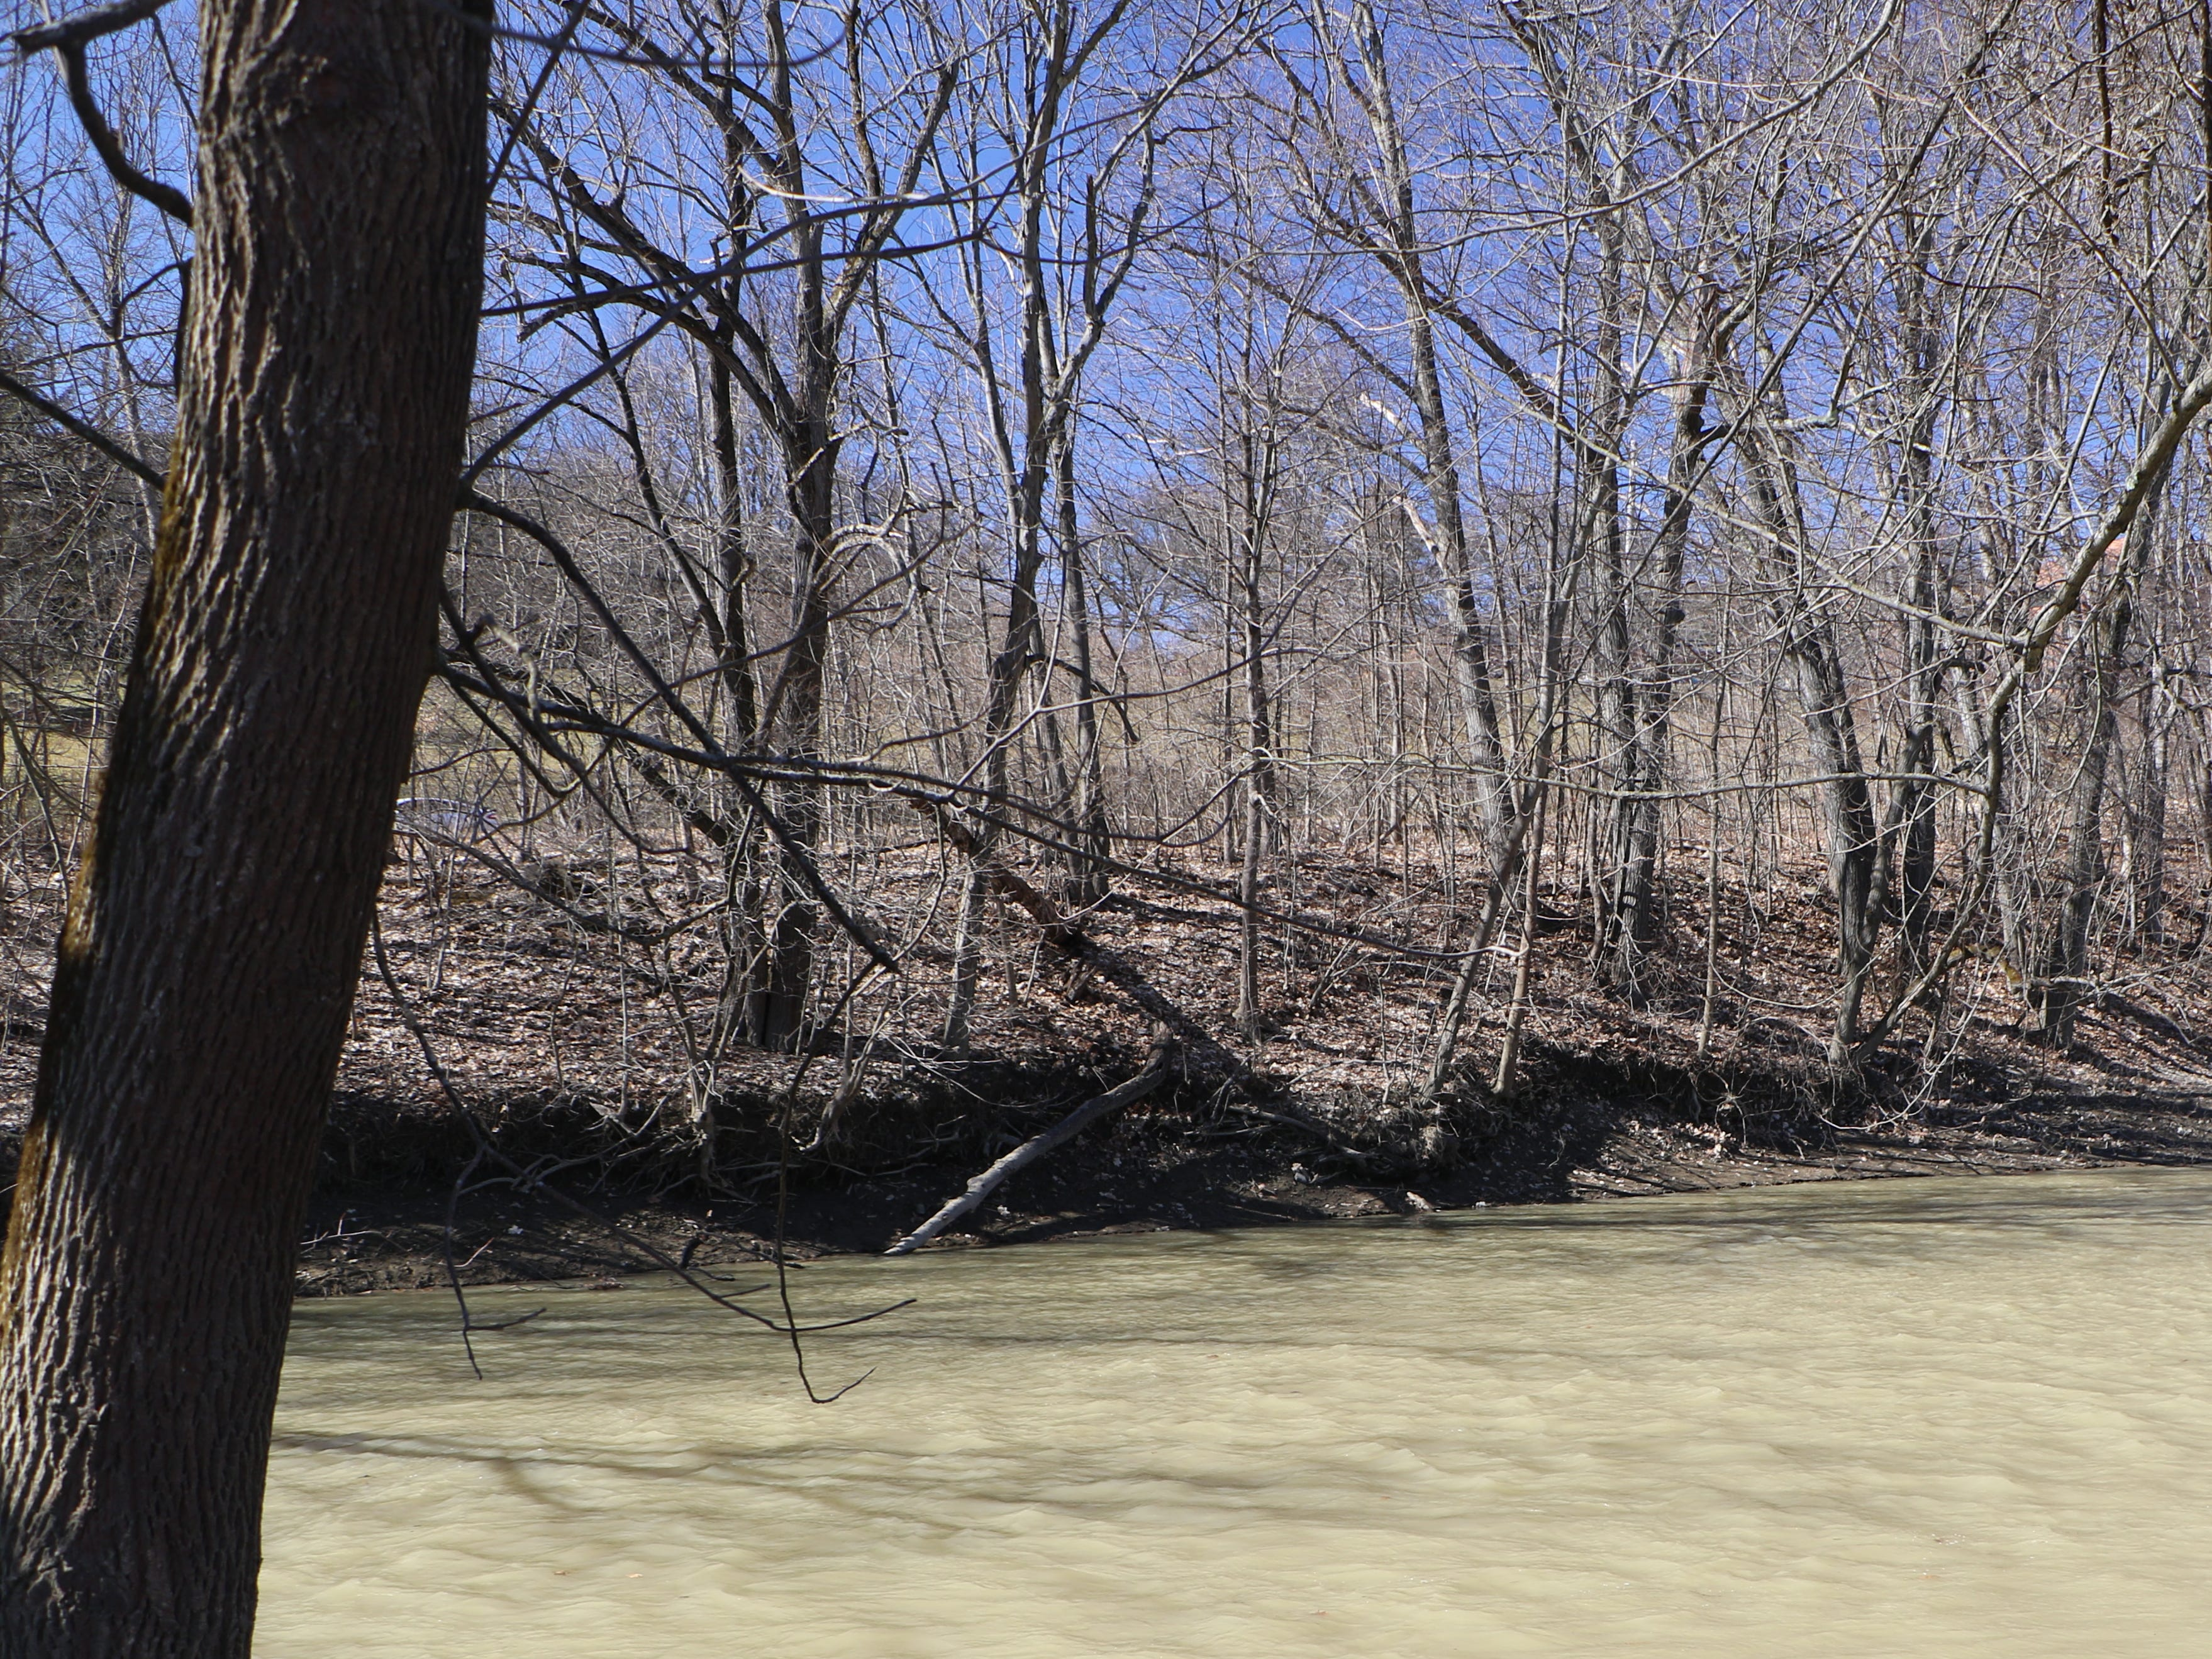 Another view of Nanticoke Creek.